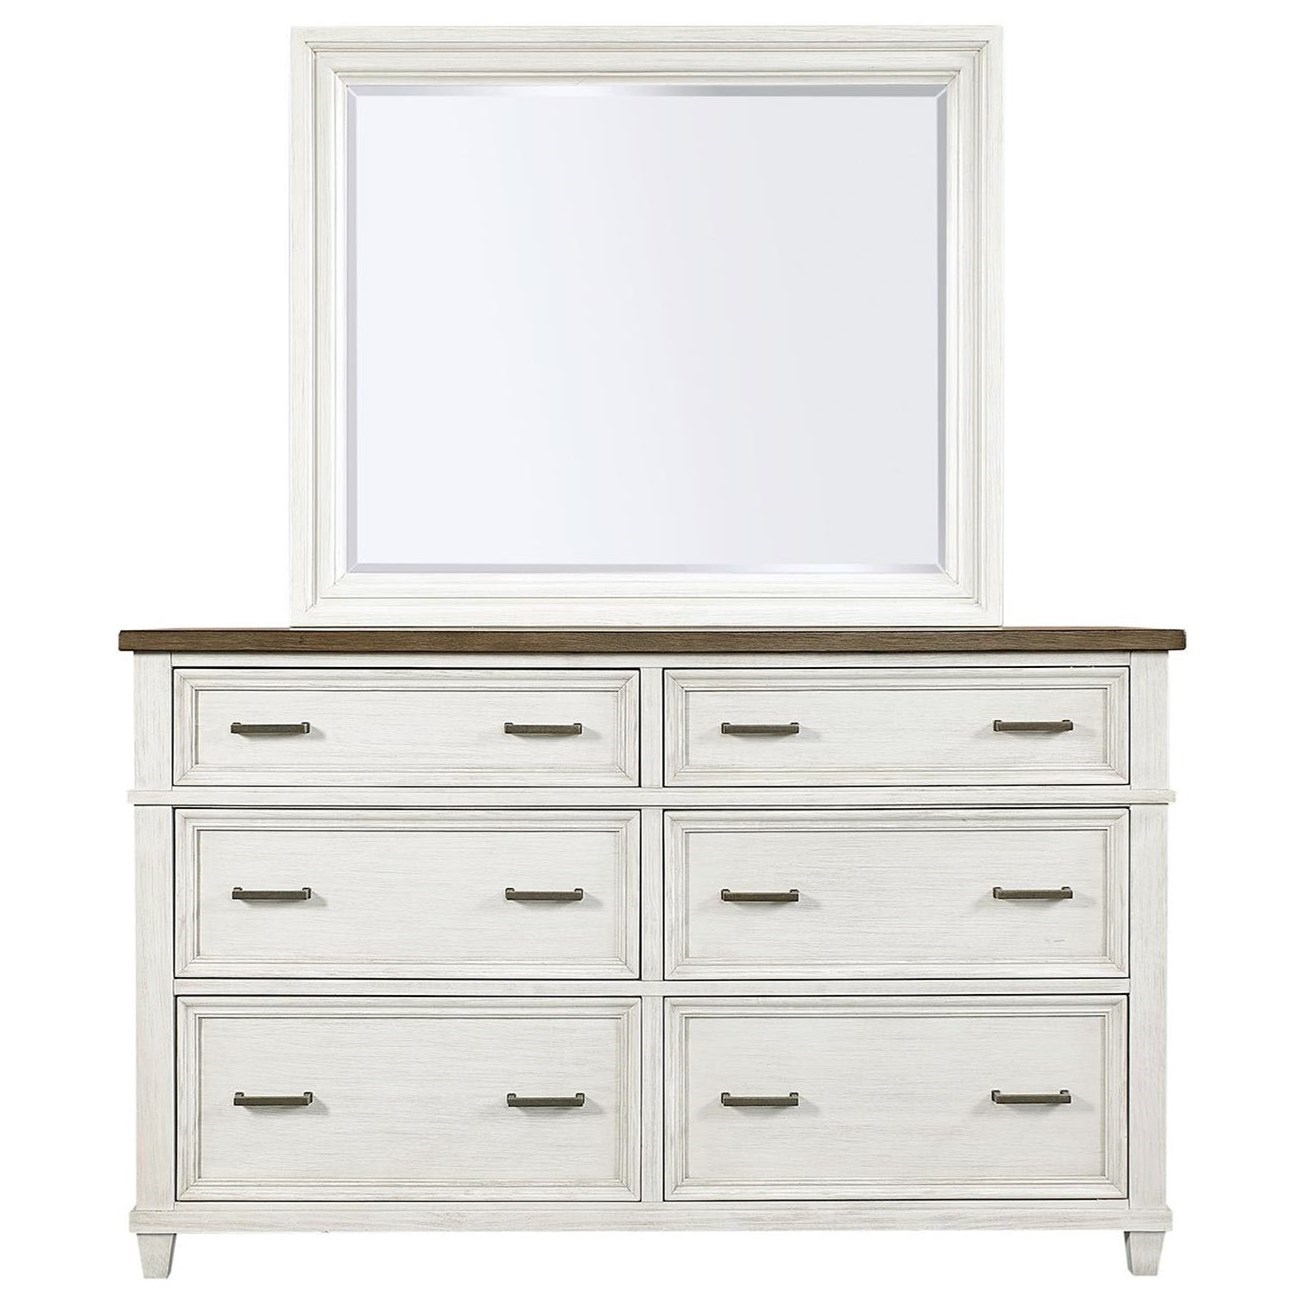 Caraway Dresser and Mirror Combination by Aspenhome at Baer's Furniture